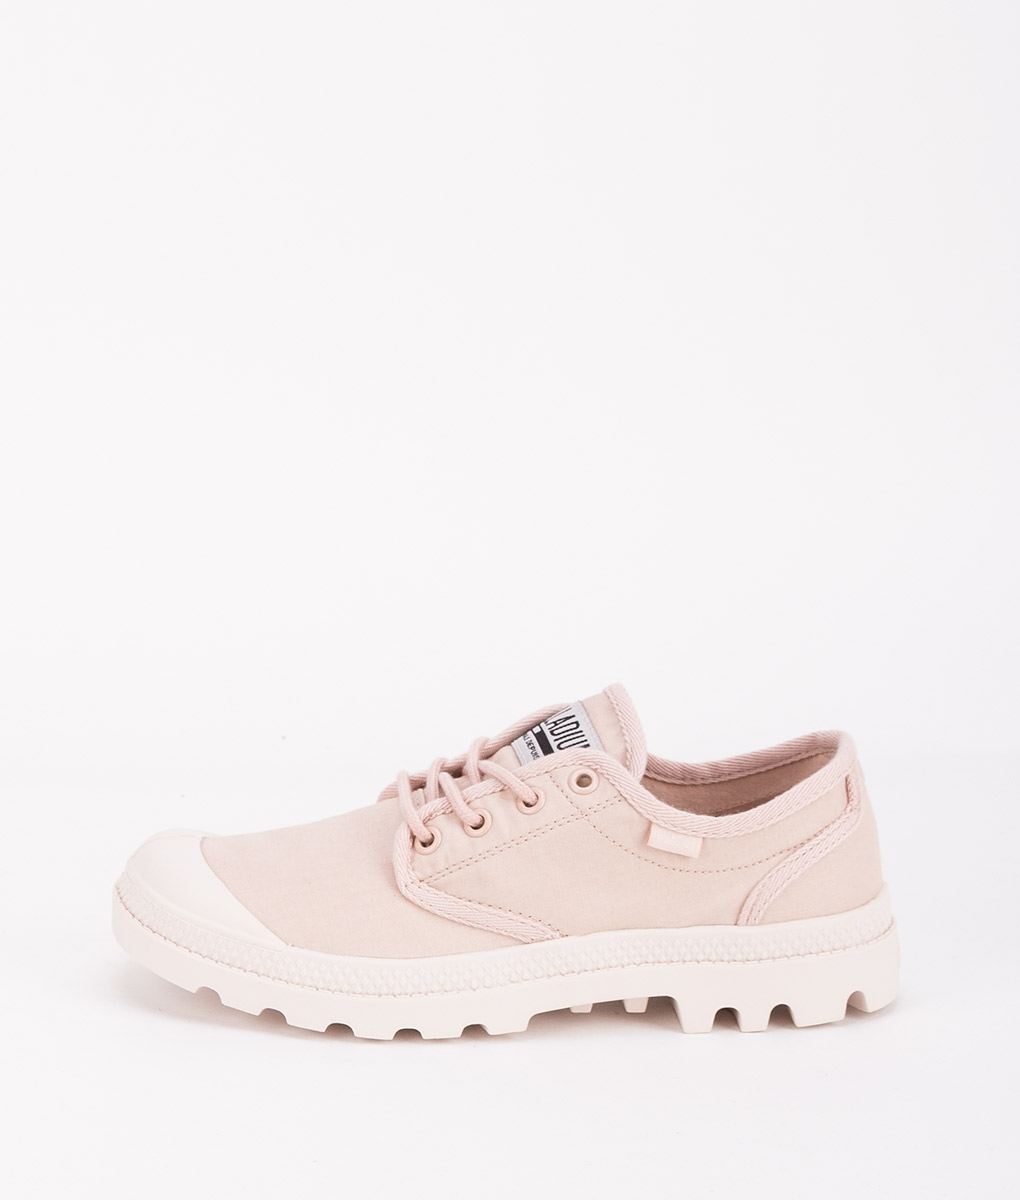 PALLADIUM Women Sneakers 75758 PAMPA OX ORIGINALE, Rose Dust Whisper Pink 74.99